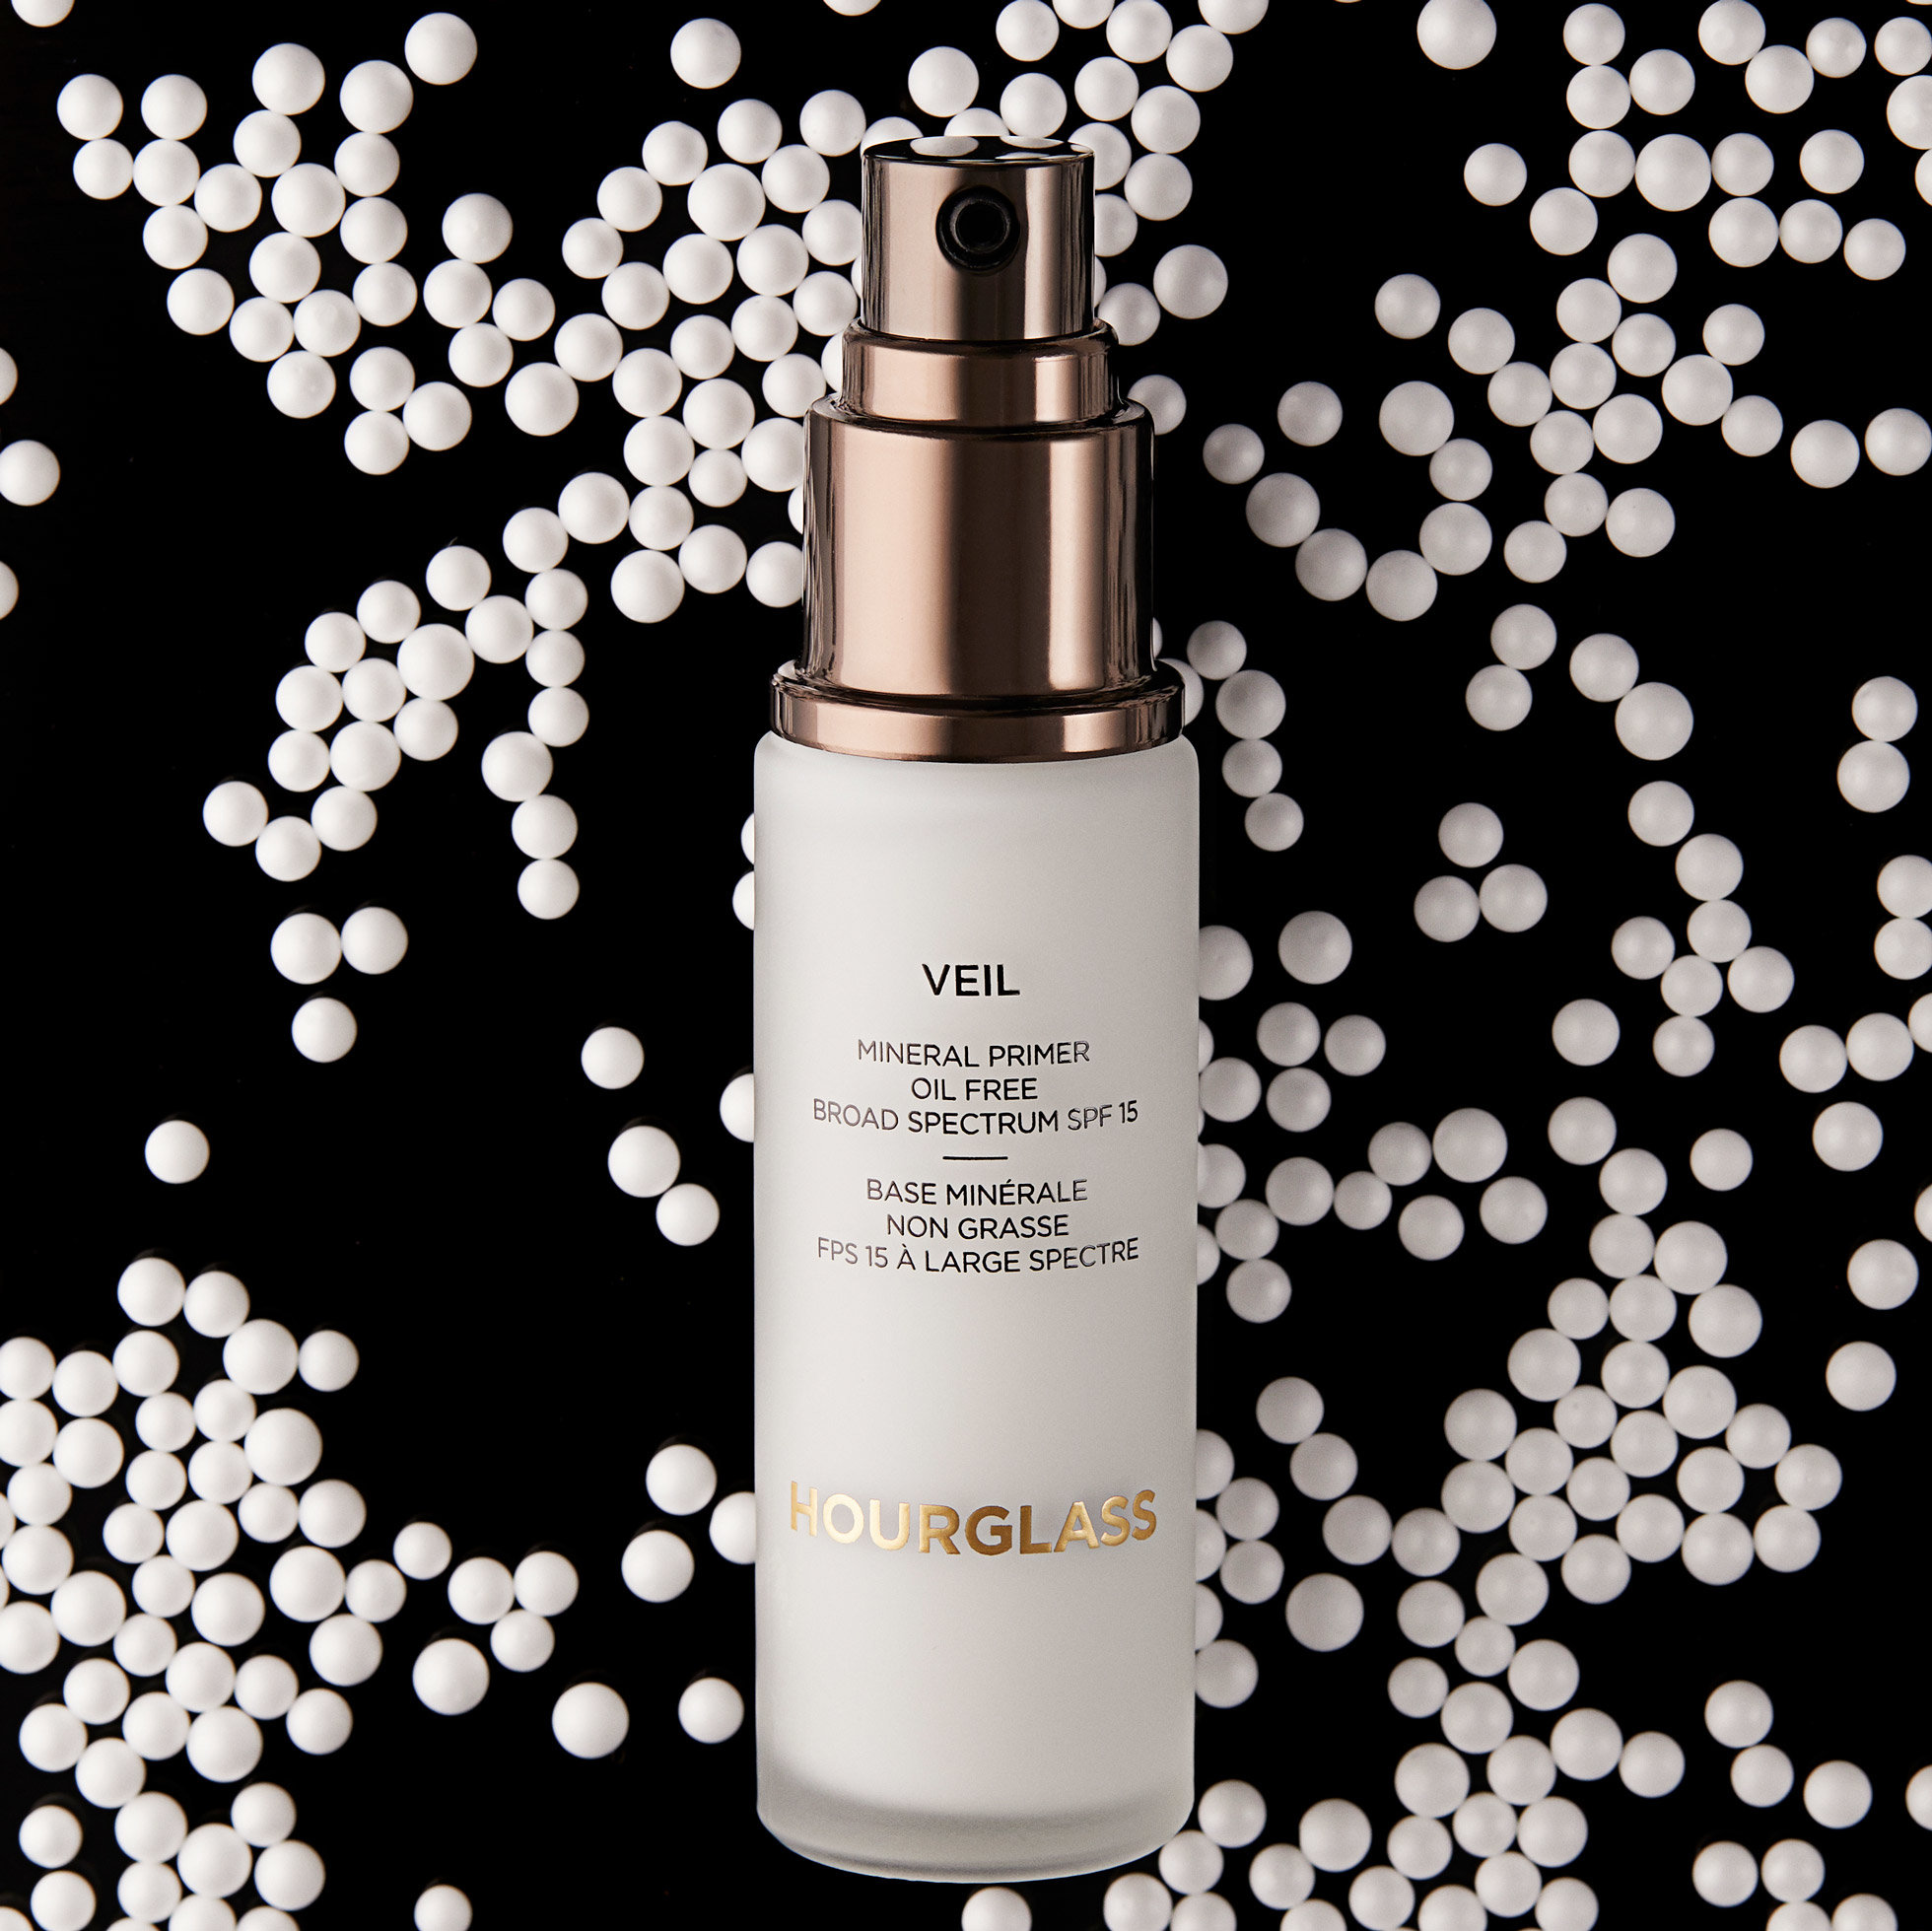 Image result for hourglass + veil retouching fluid